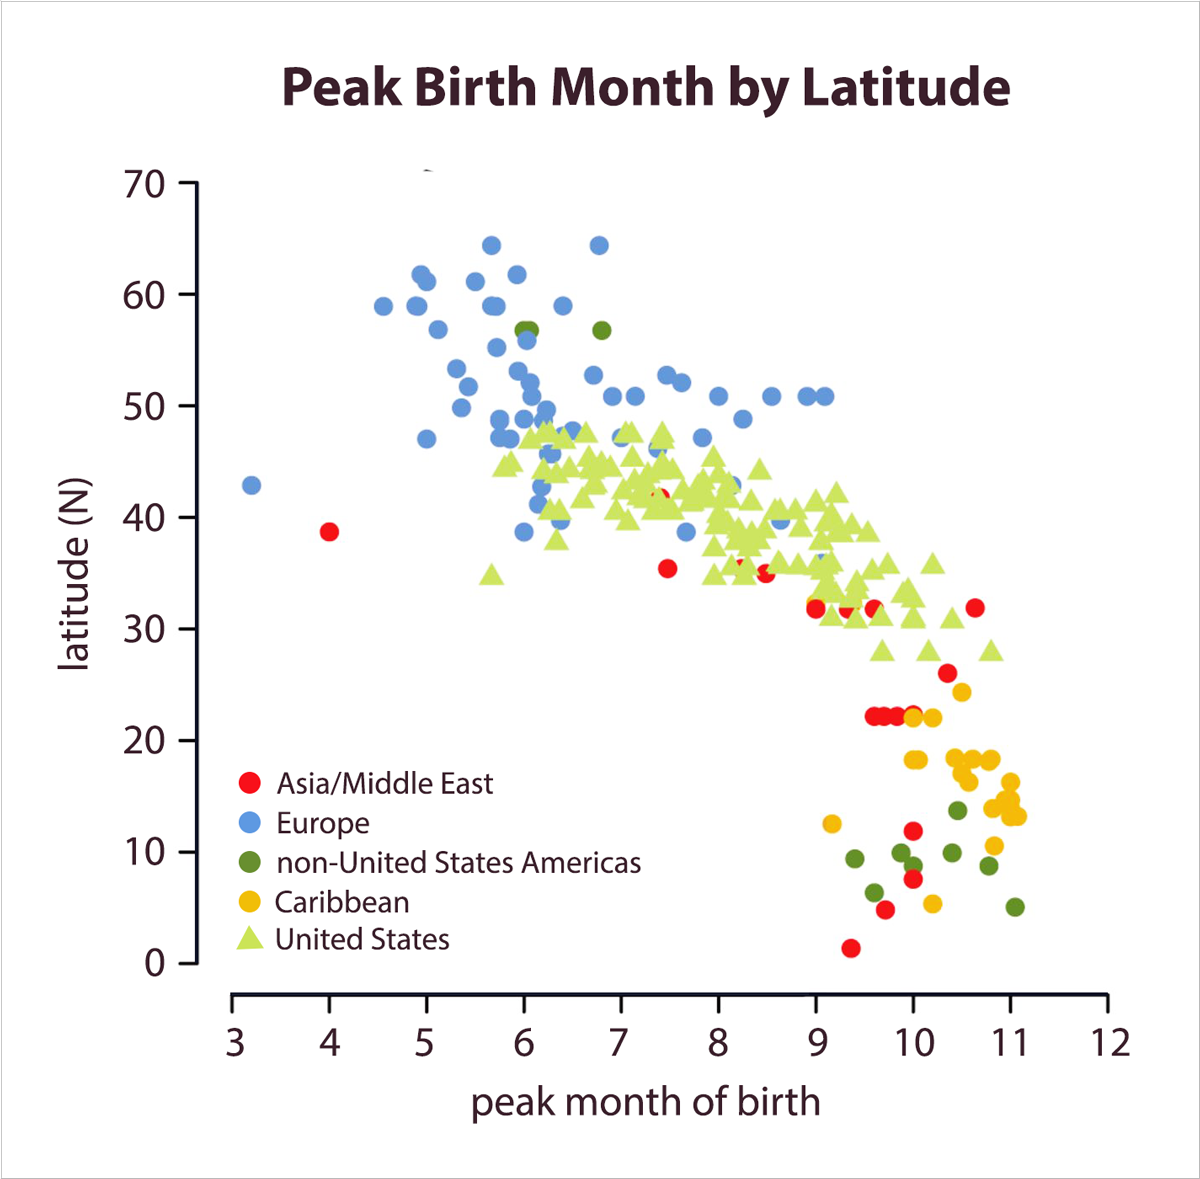 peak birth months by latitude